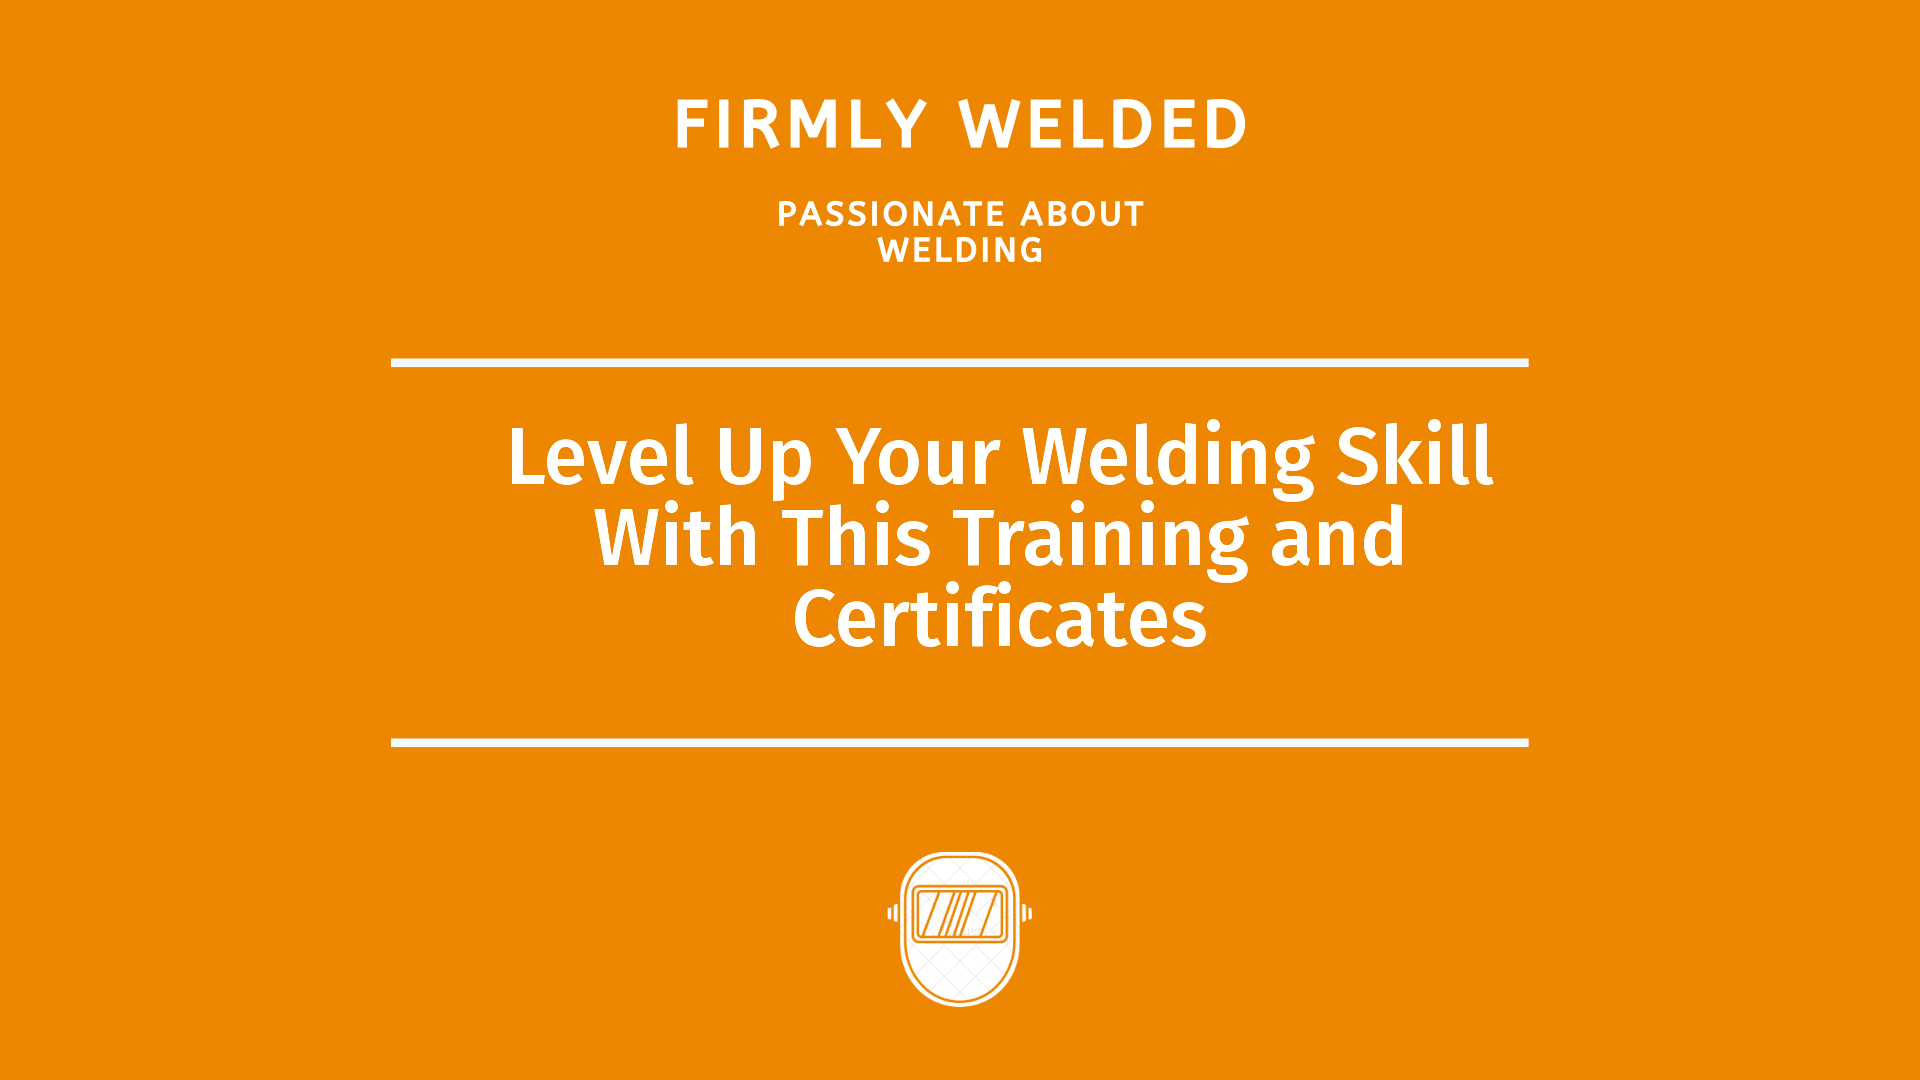 Level Up Your Welding Skill With This Training and Certificates